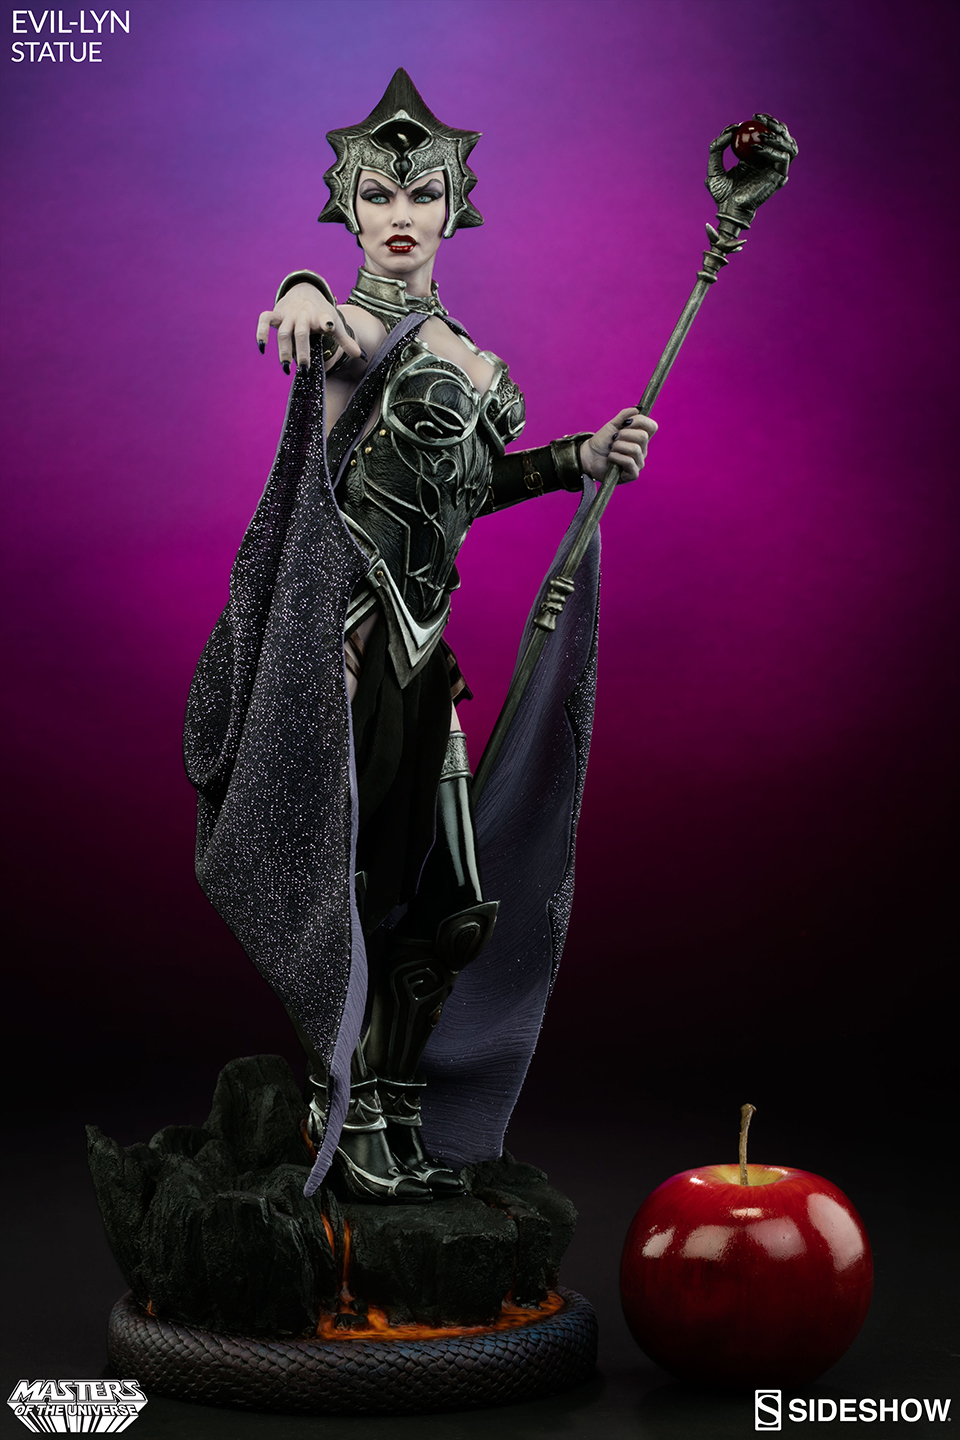 Sideshow Masters of the Universe Evil-Lyn Statue